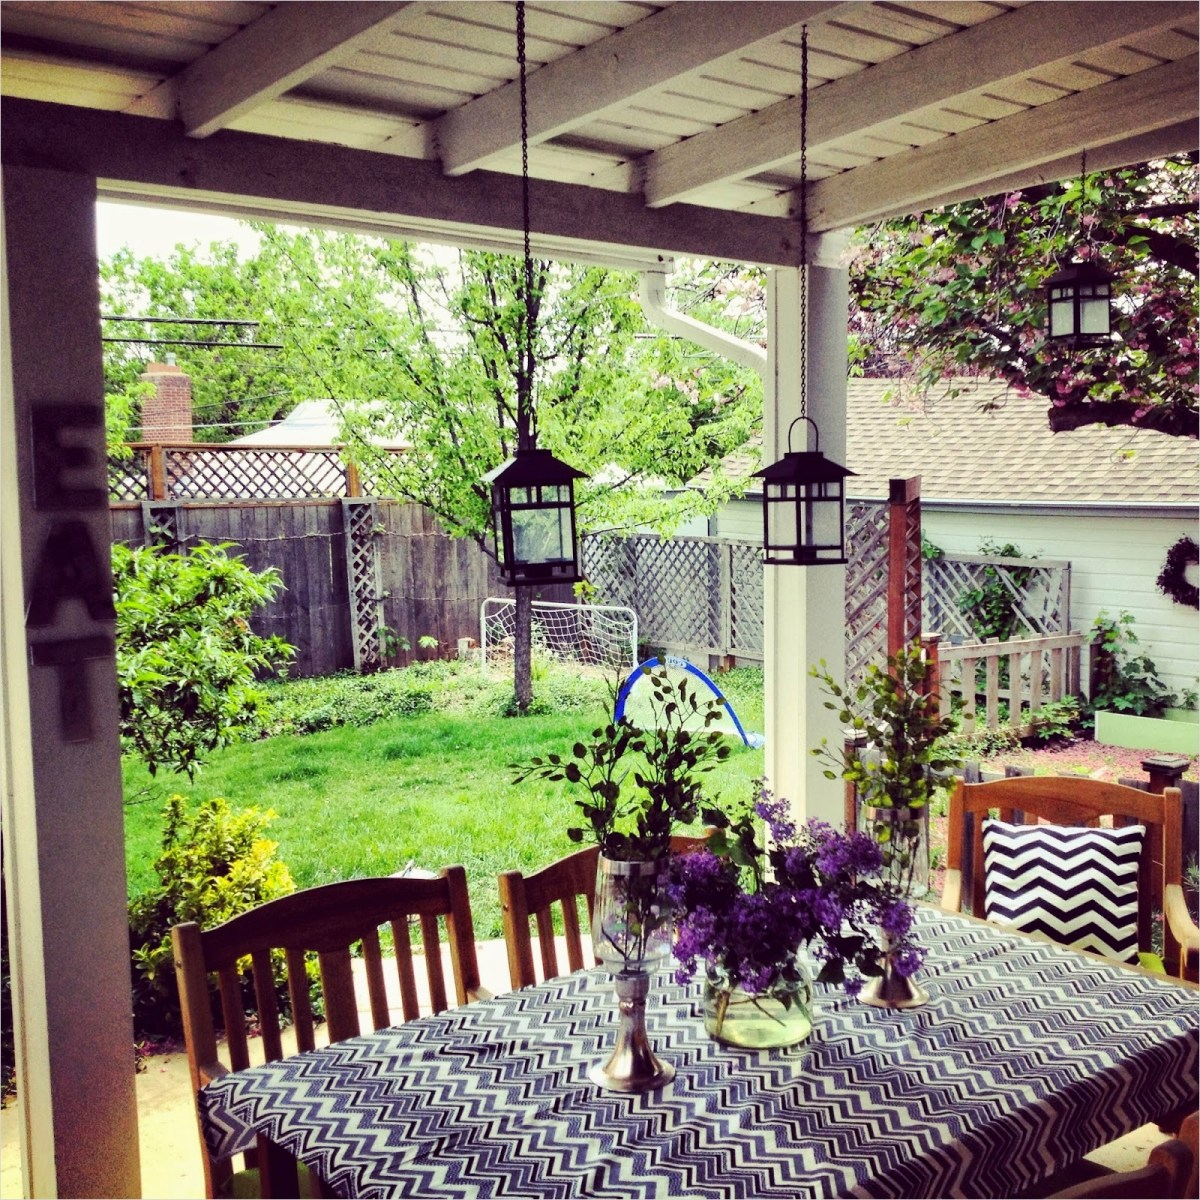 35 Stunning Little Porch Decorating Ideas for 2020 99